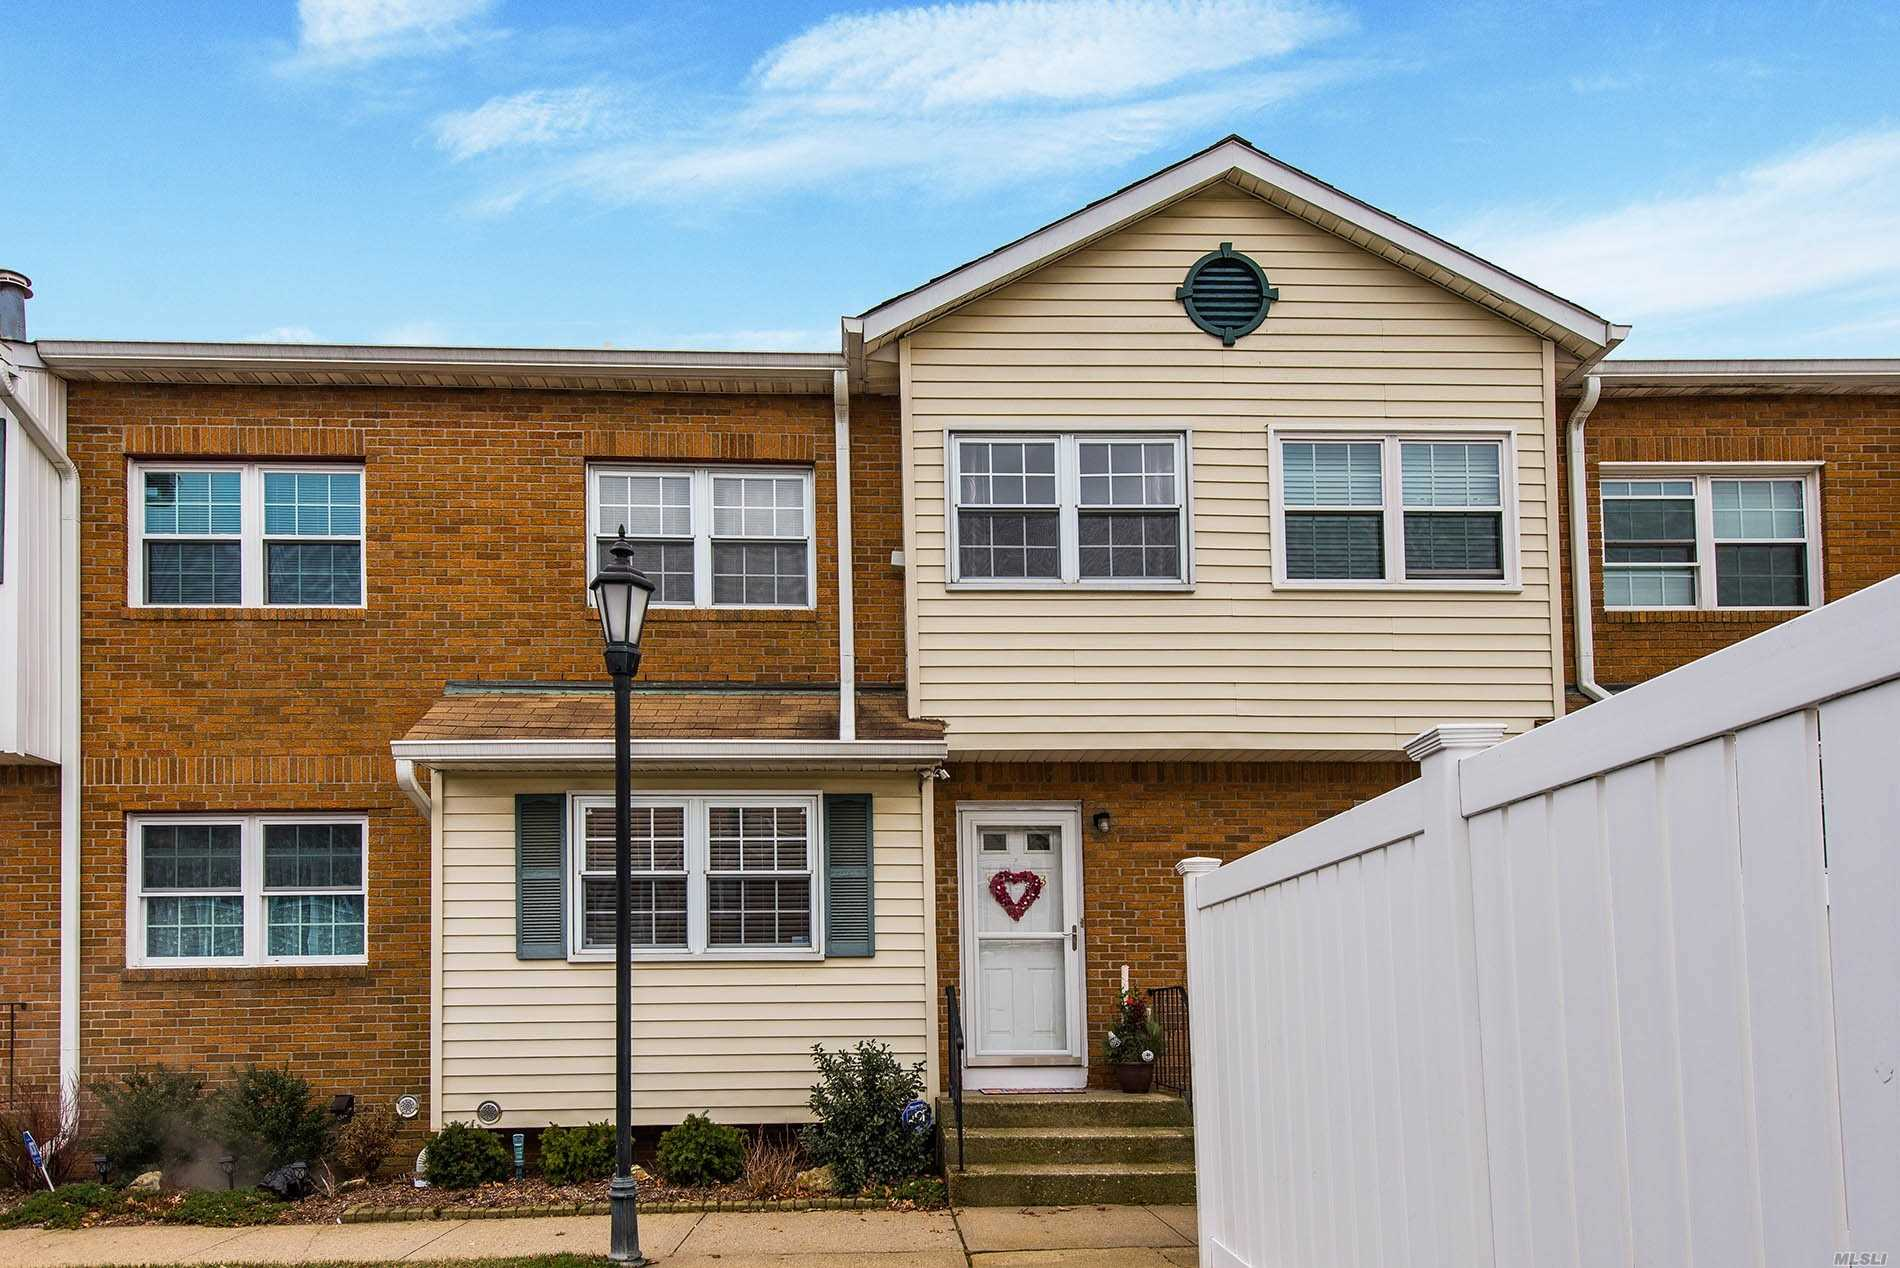 One Of The Largest Condos In The Area. Commuters Dream. Close To Lirr, Shops & Parks. 1520 Sq. Ft. Plus Full Basement & Attic. 2 Parking Spots Included. Community Pool. Very Desirable Complex. Huge Updated Eik, 3 Bedrooms, 2.5 Baths. Closets Galore. Wood Floors. All Updated Baths. Heating System & Cac Less Than 1 Year Old.. Diamond Condition. Truly Move Right In. Don't Miss This One!!